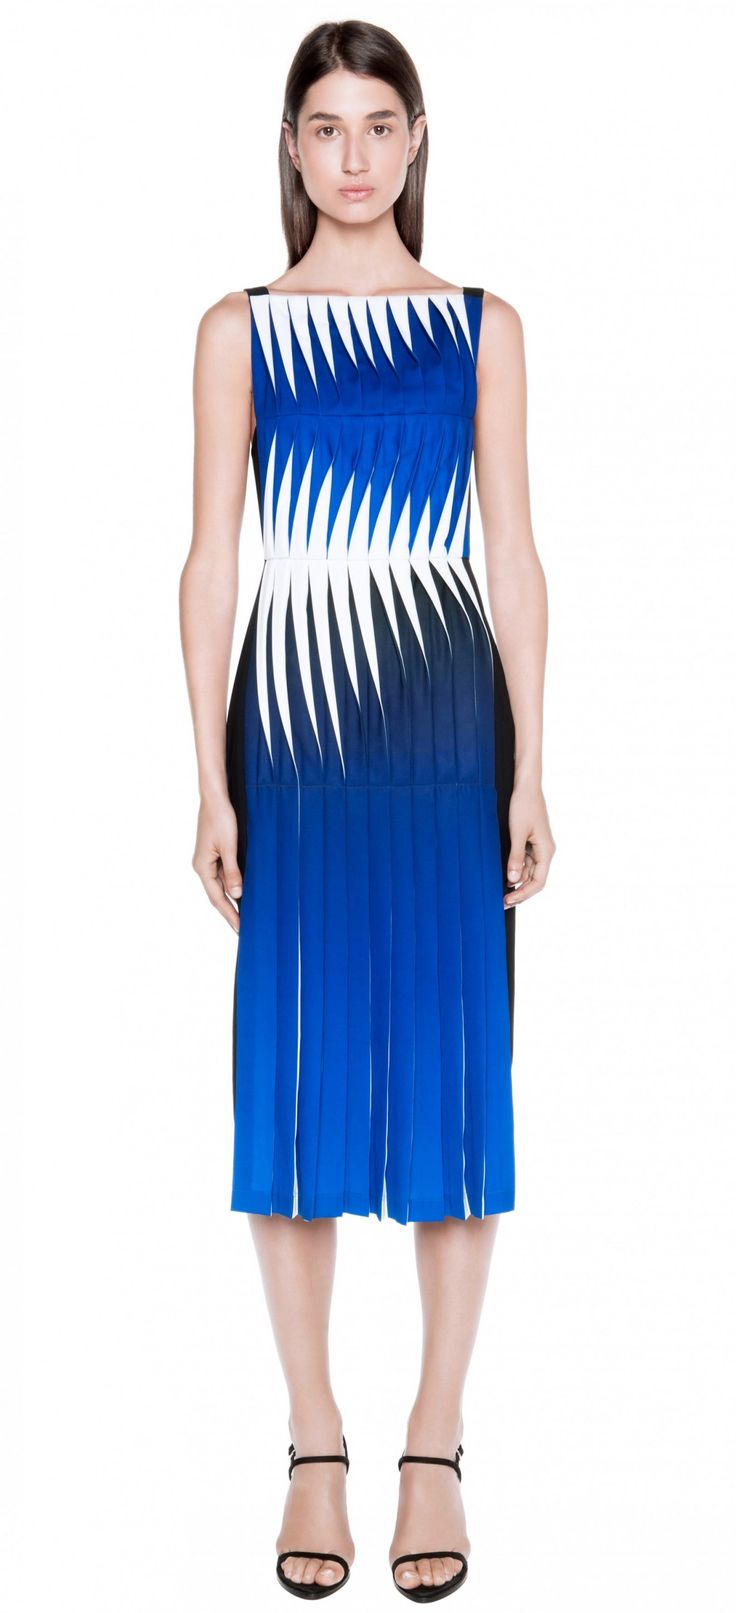 LENTICULAR PRINT PLEATED DRESS   Dion Lee